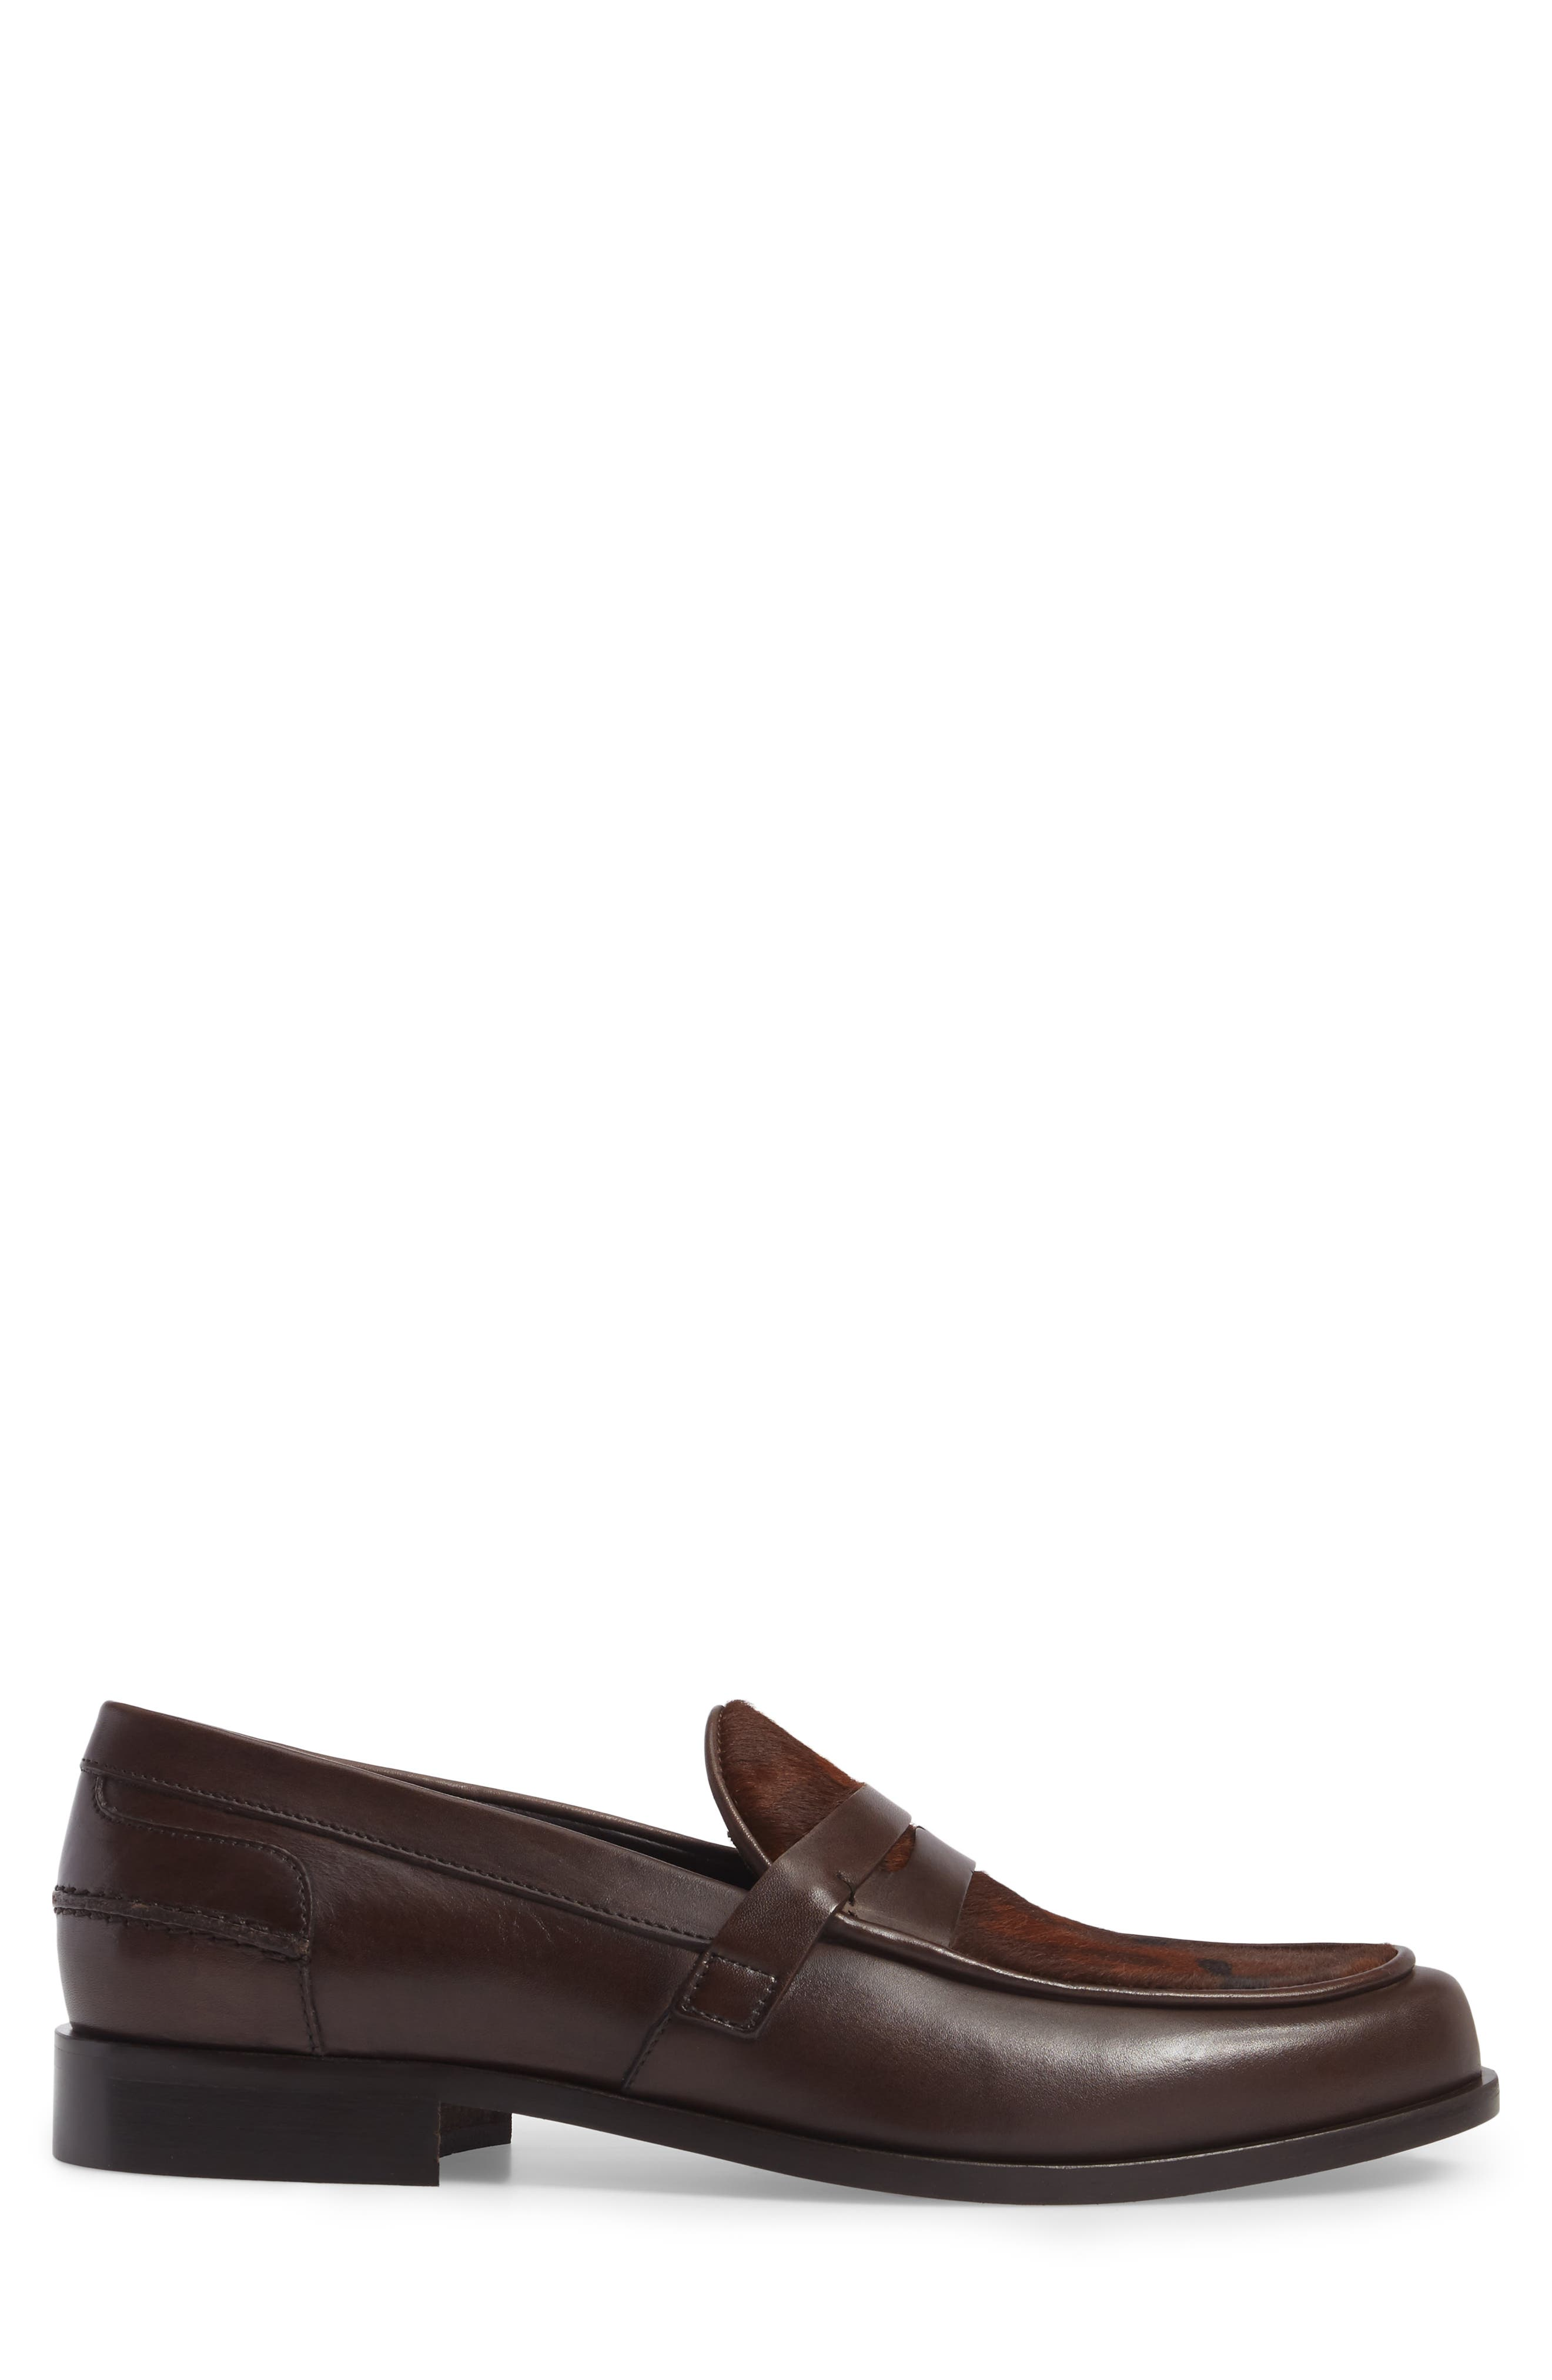 Alternate Image 3  - Donald J Pliner Sawyer Penny Loafer (Men)